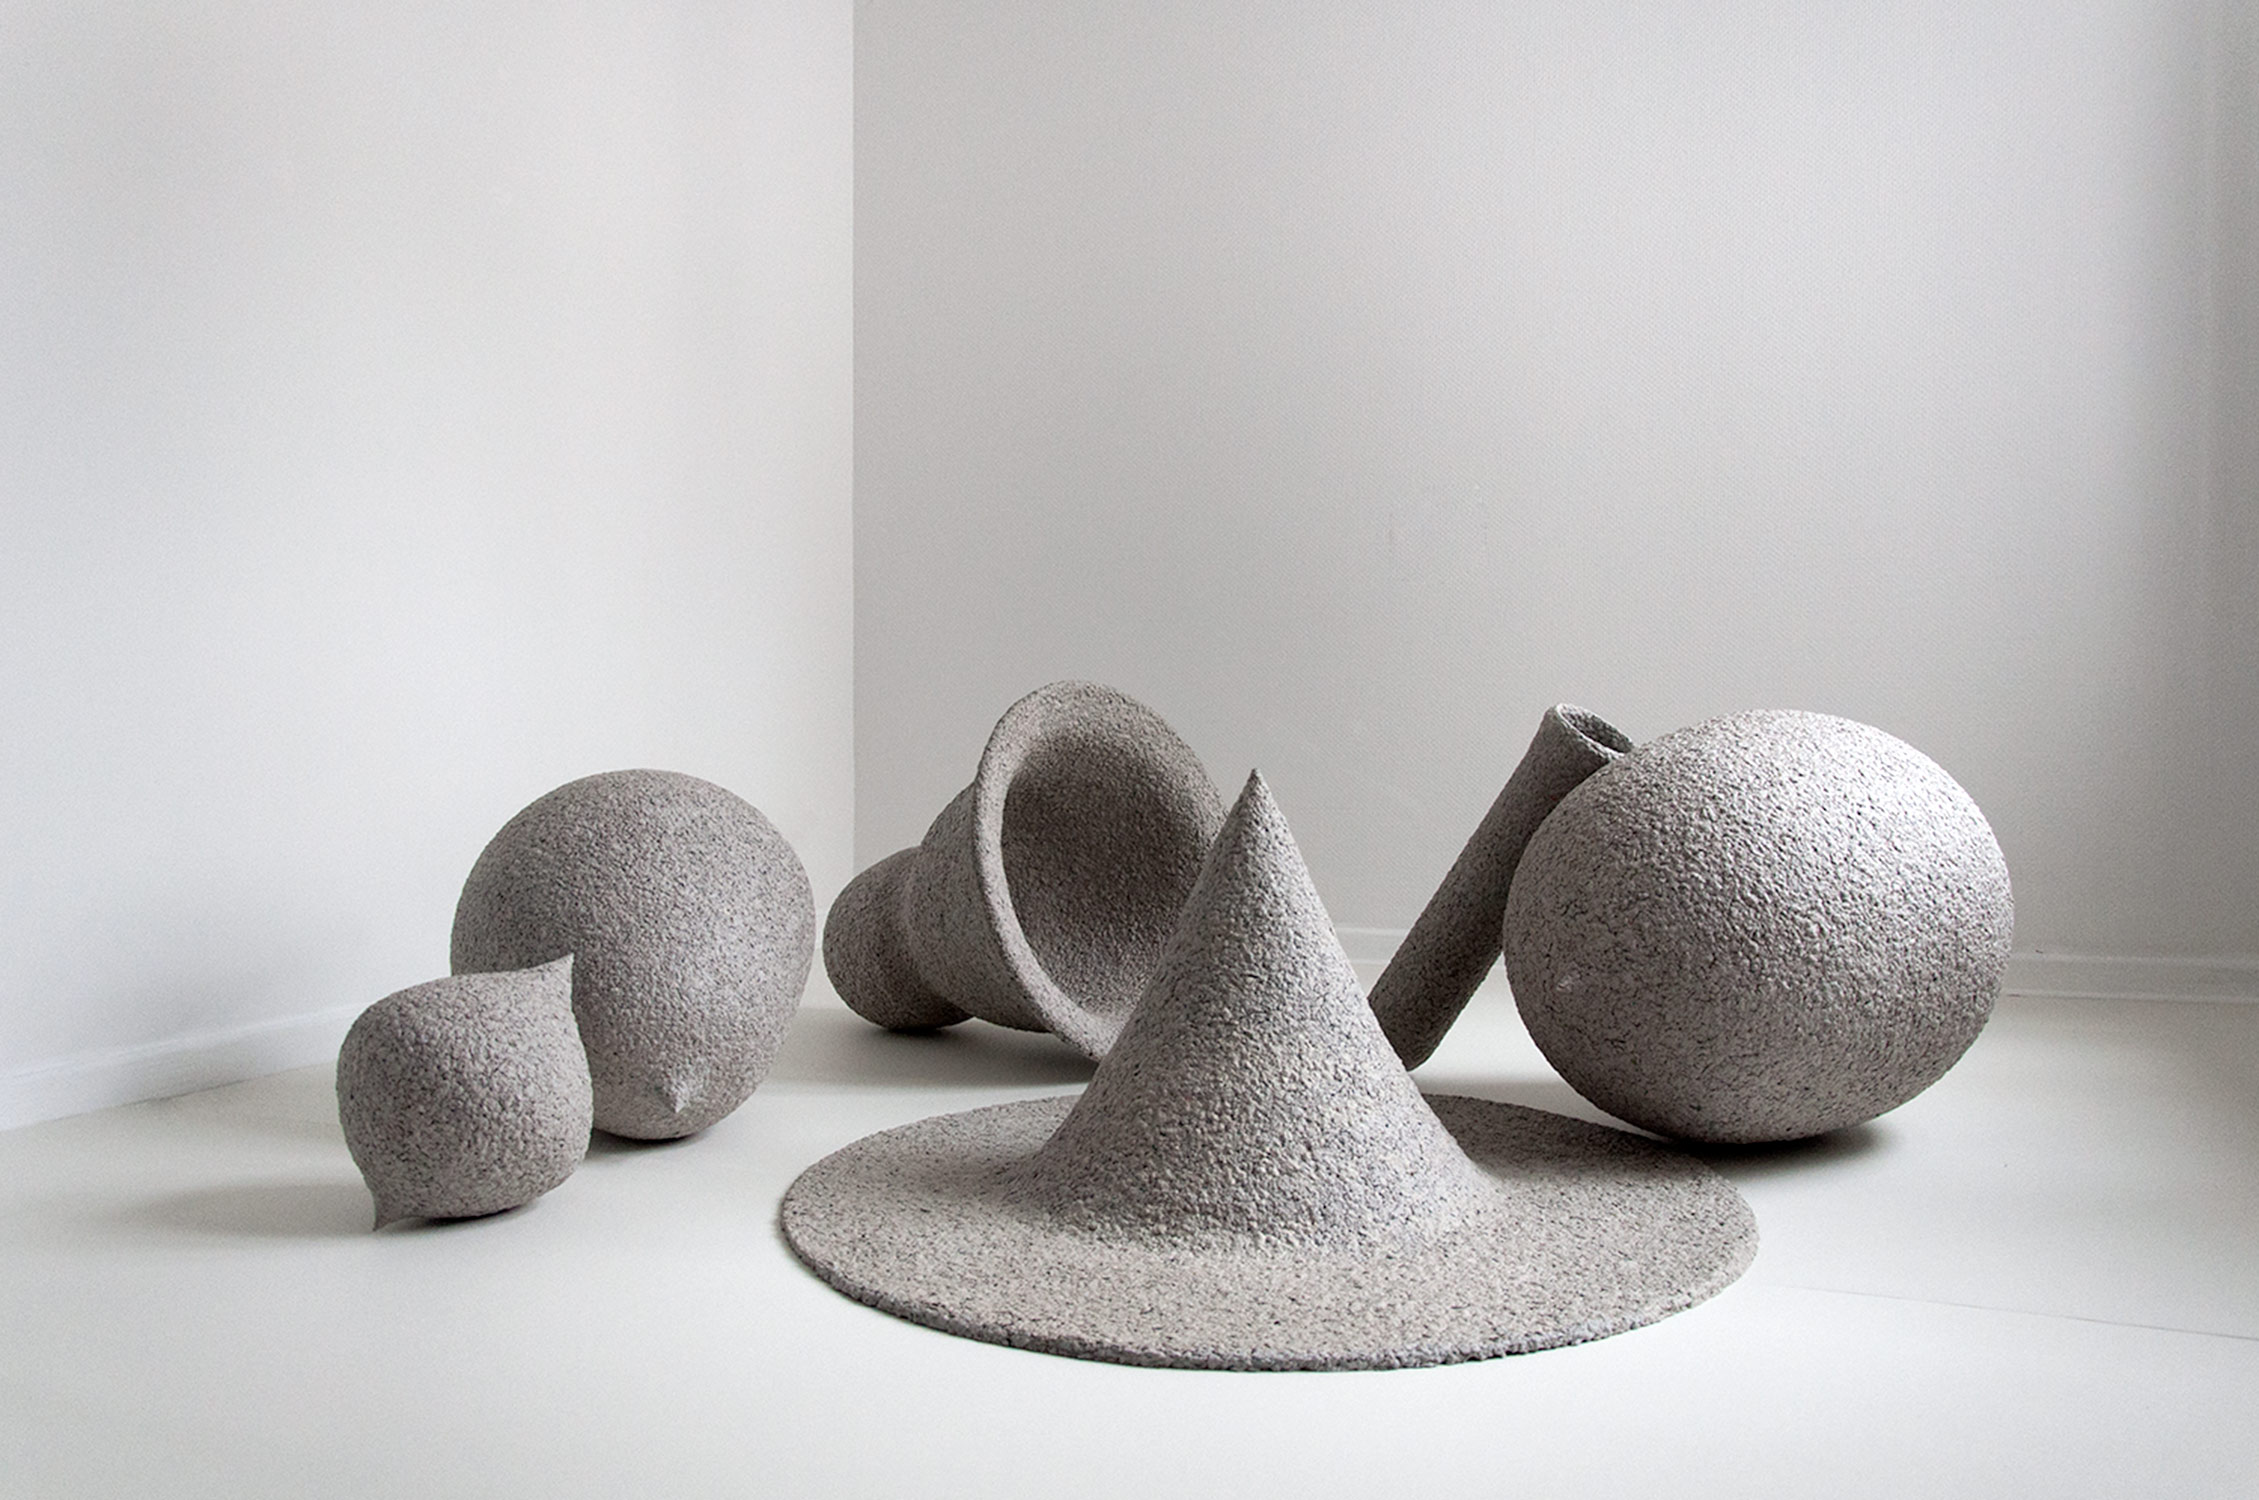 Anneke Kleimann Concrete Speculations